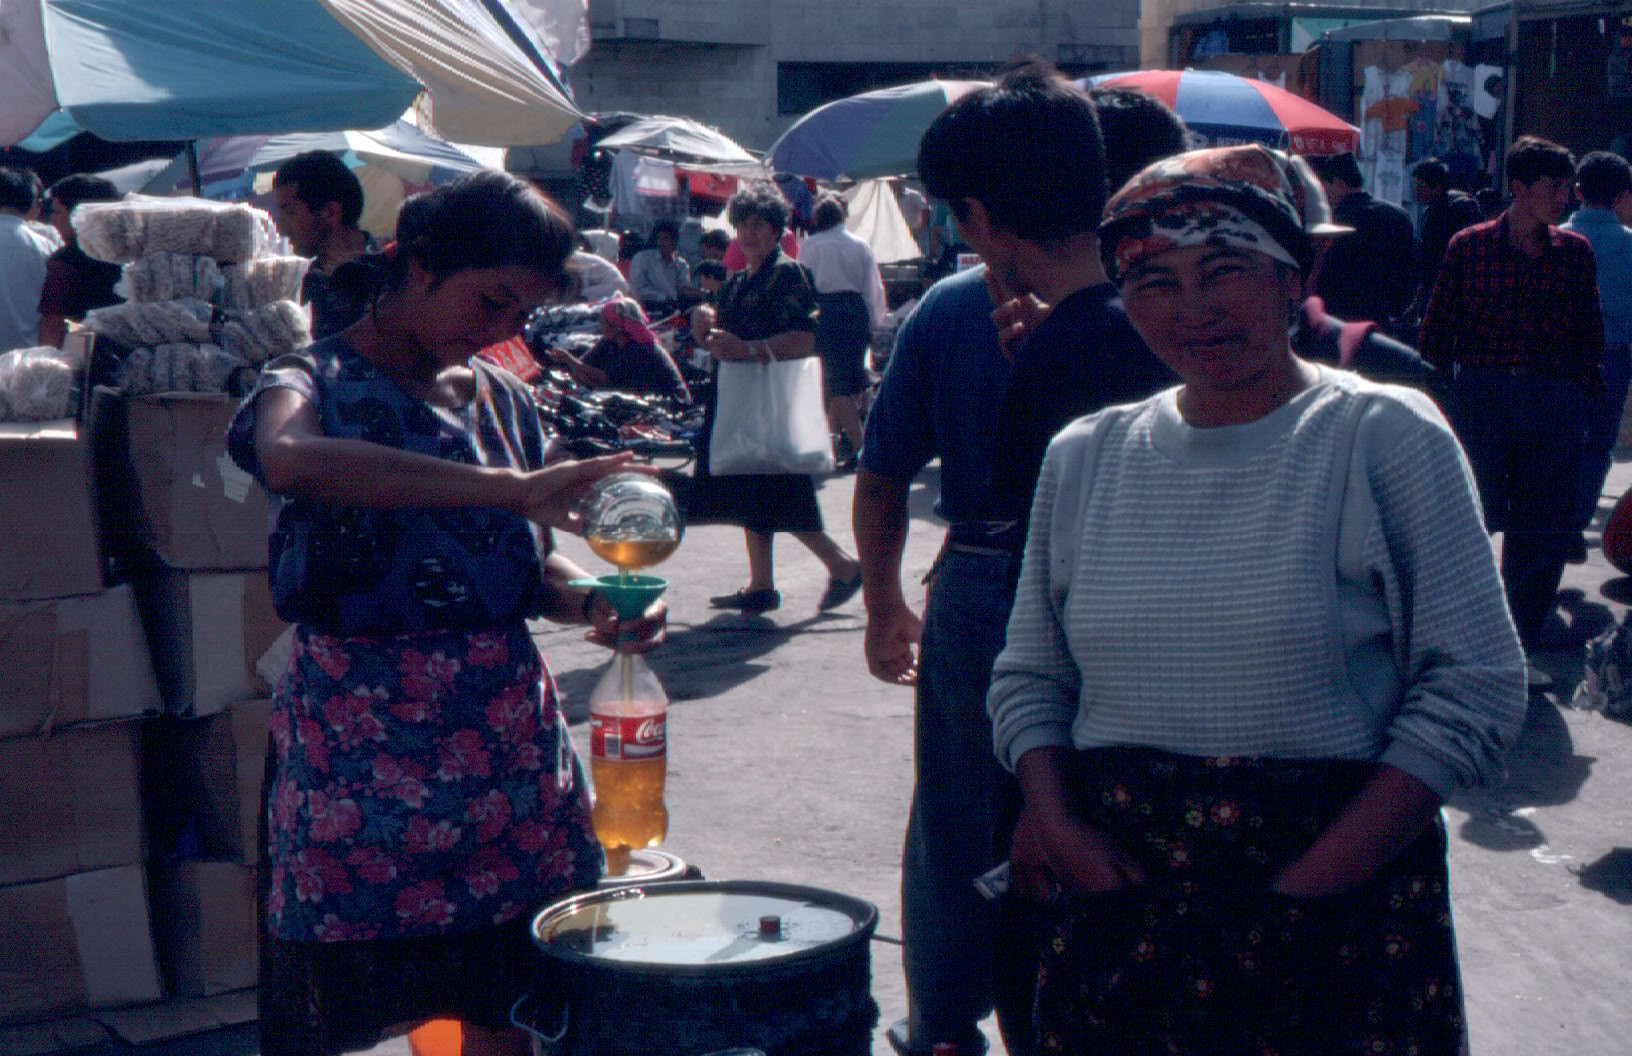 Recycling on the Osh bazaar--decanting cooking oil into plastic soda bottles